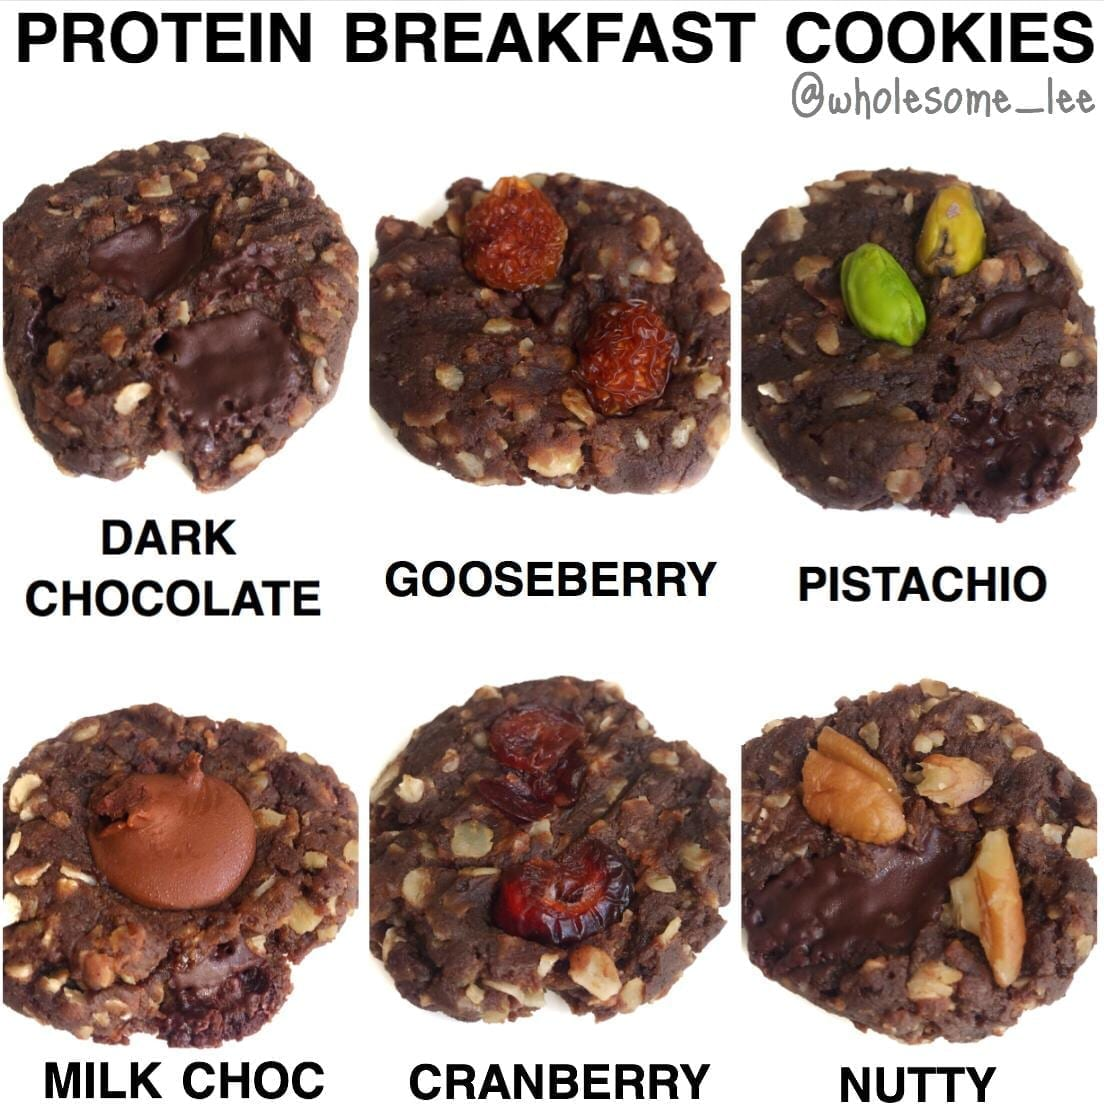 Protein Breakfast Cookies